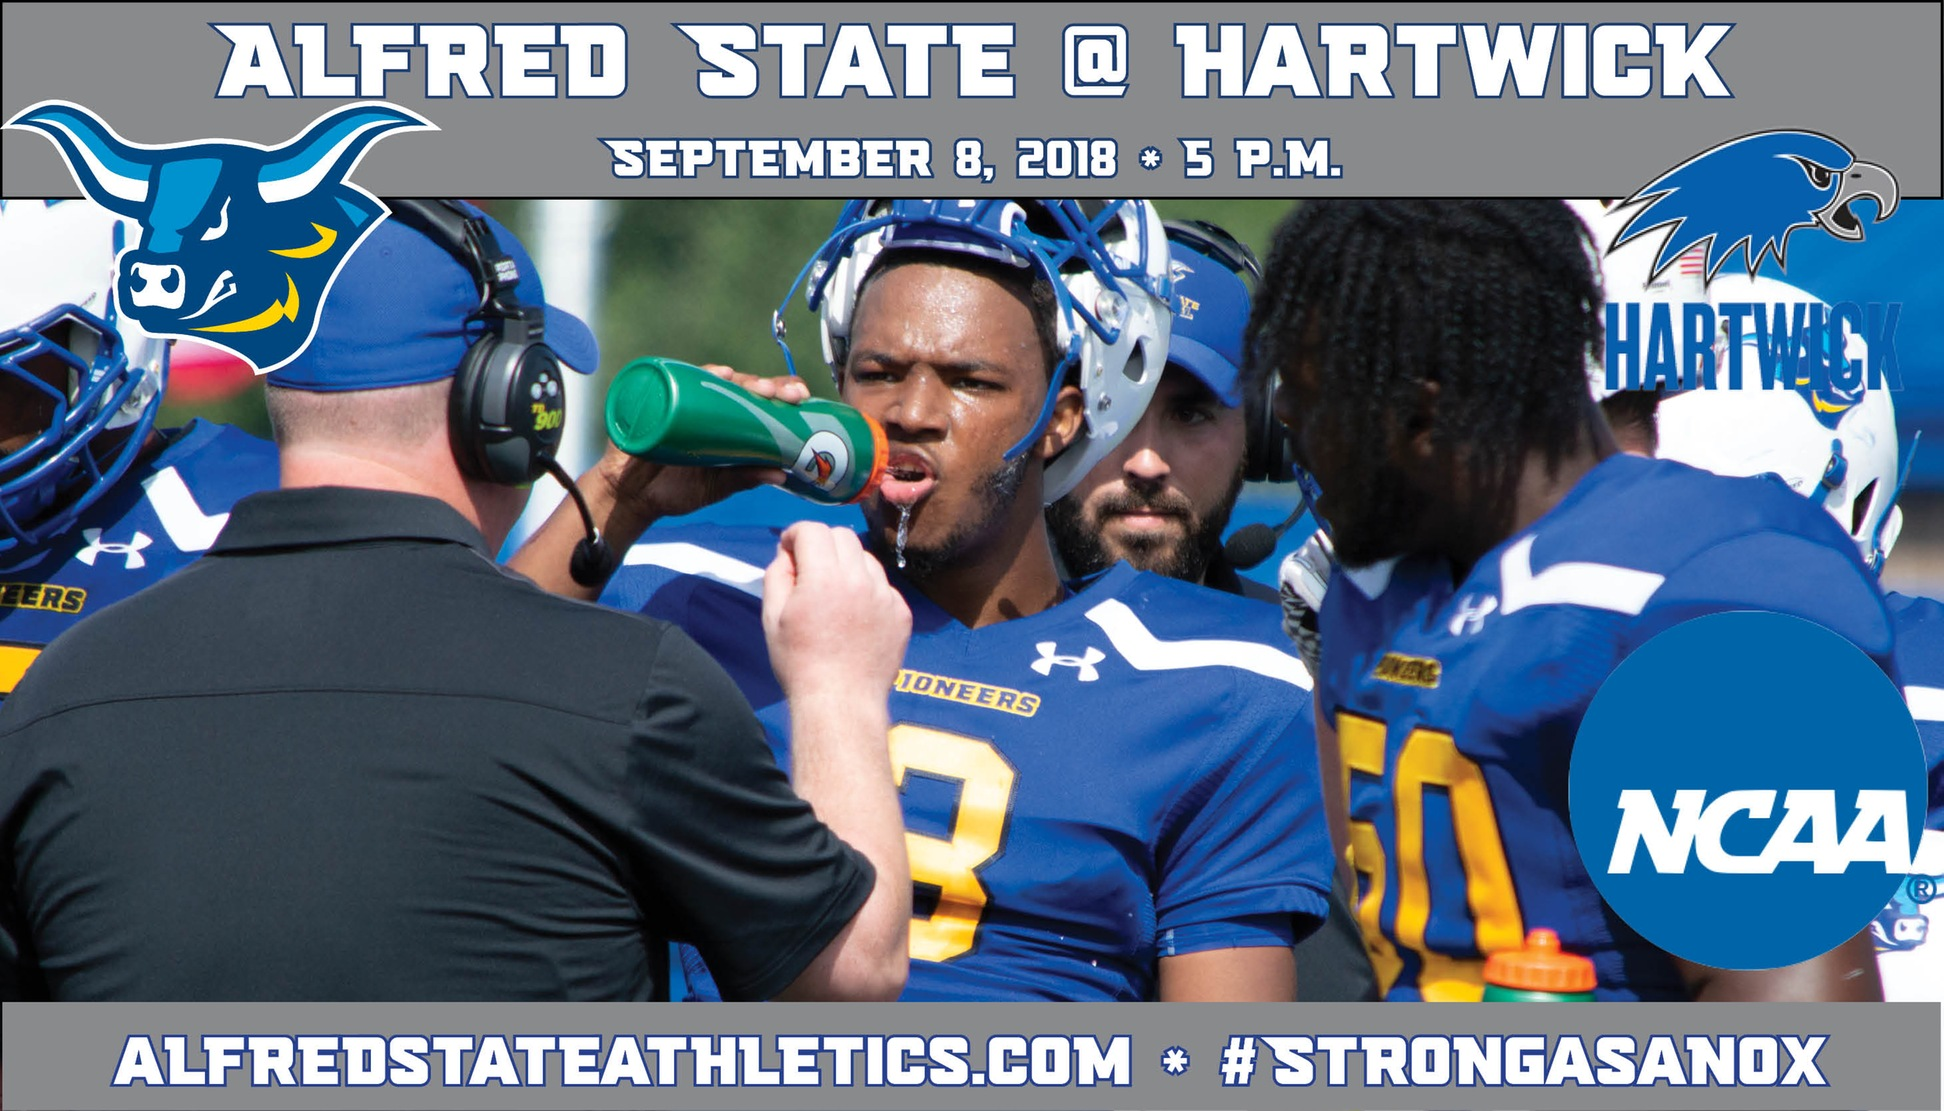 Alfred State battles Hartwick in their first road contest of 2018